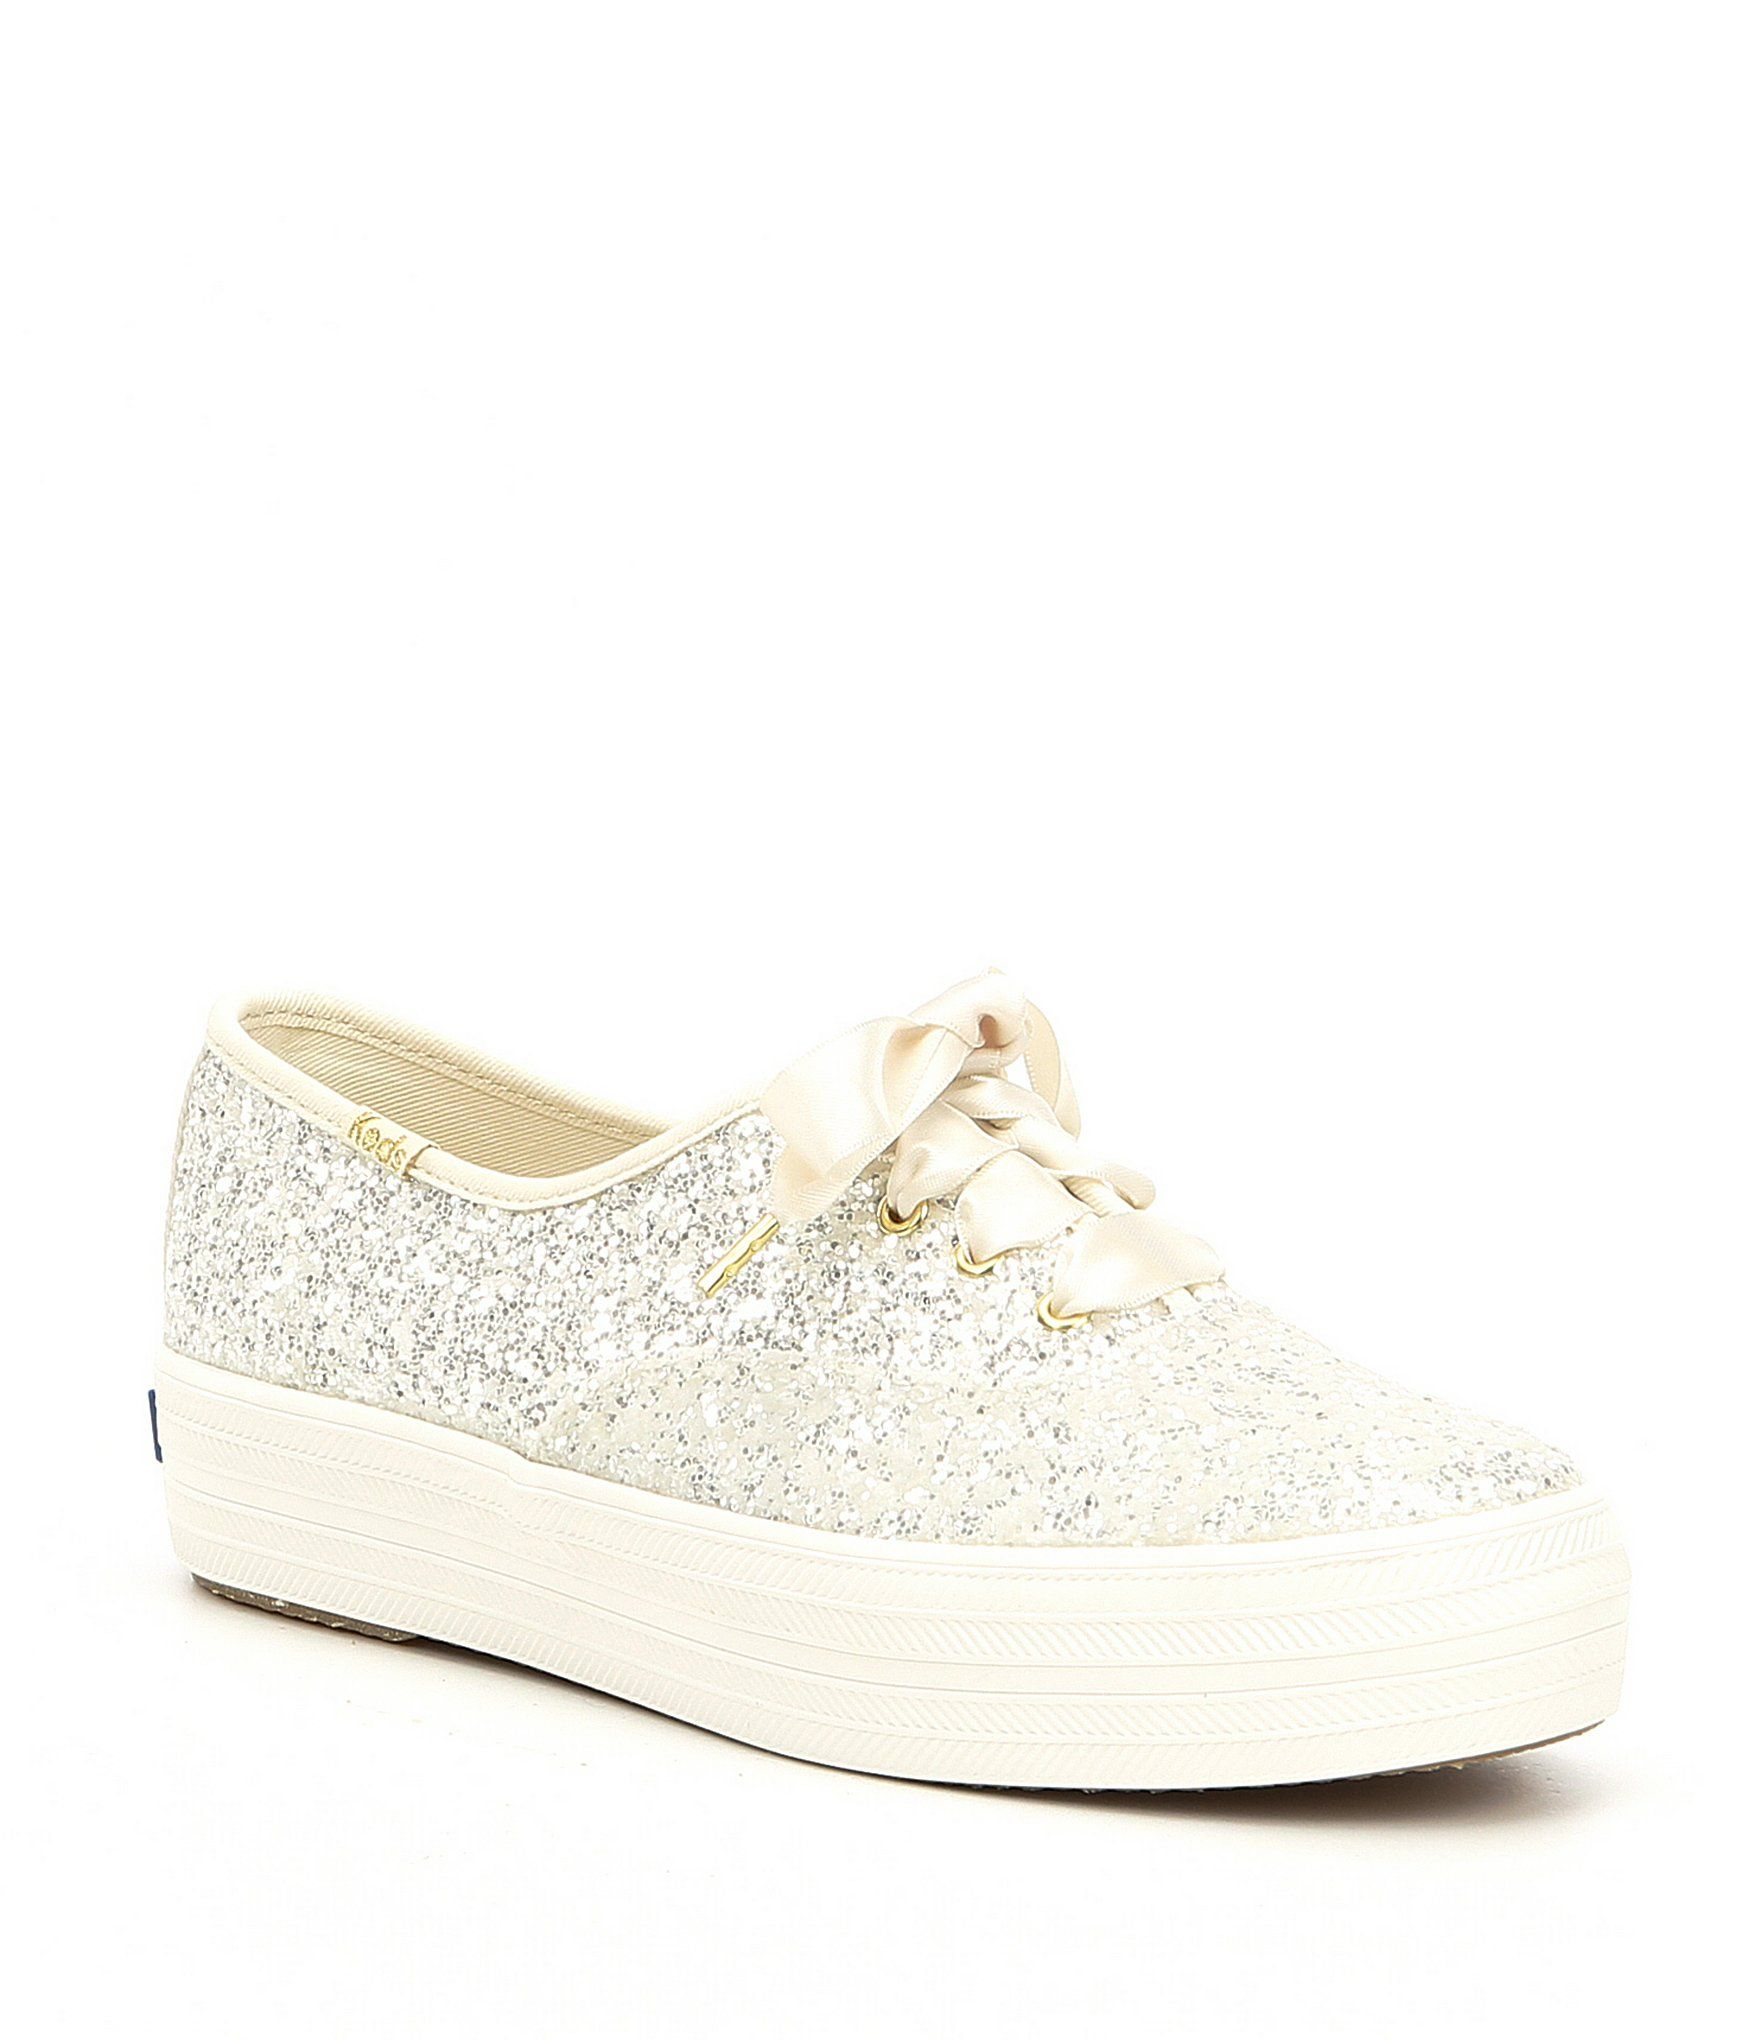 535397c8be5 Shop for keds x kate spade new york Triple Ks Glitter Sneakers at  Dillards.com. Visit Dillards.com to find clothing